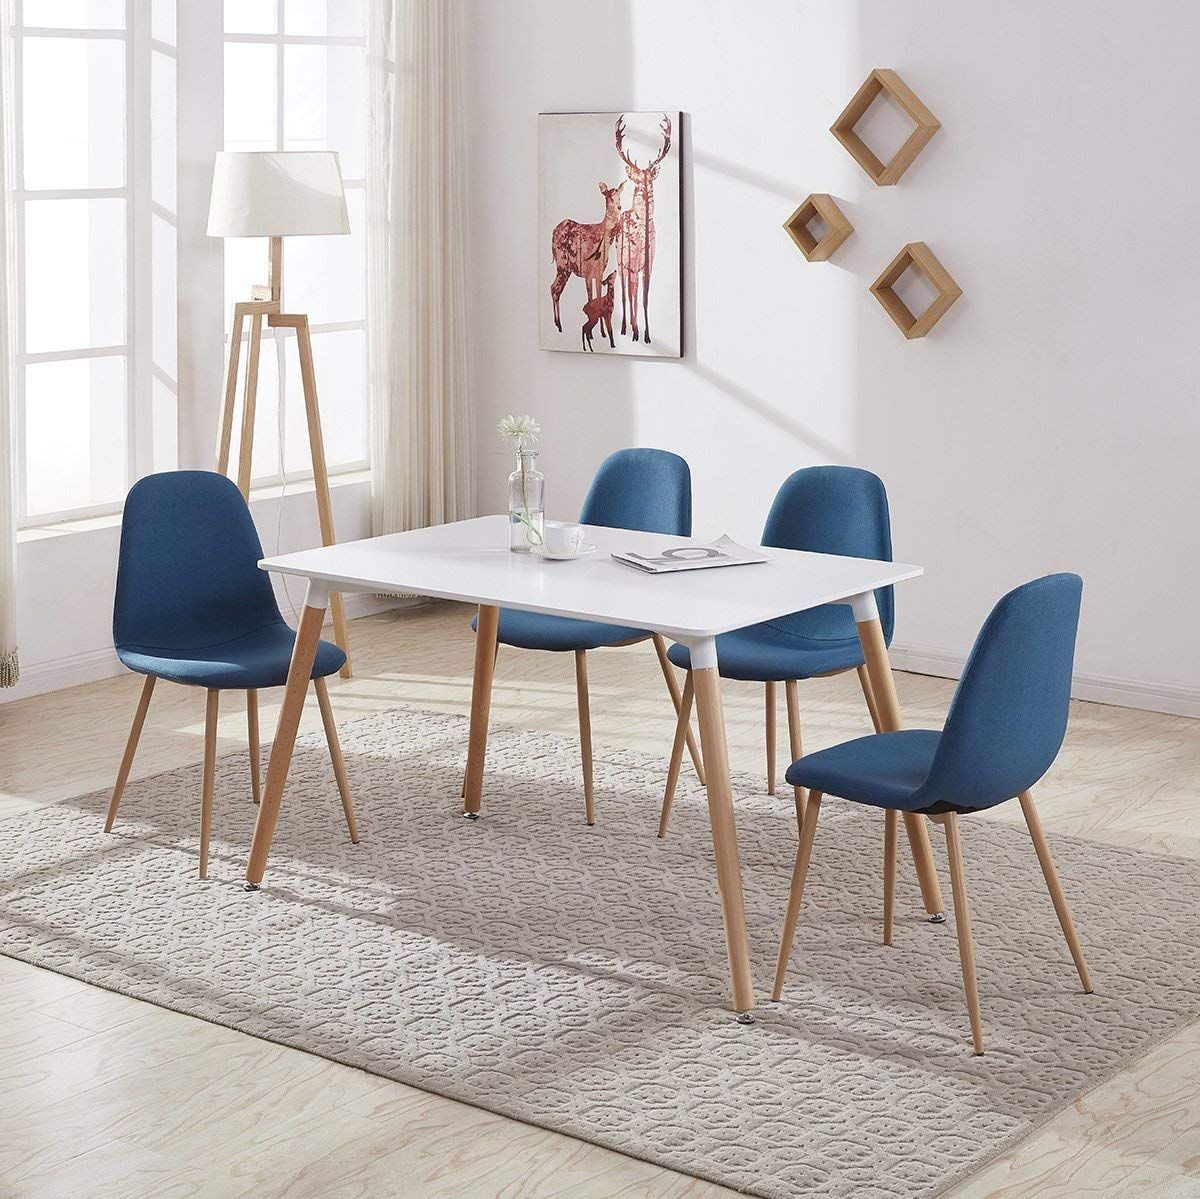 Gizza Wood Rectangular Dining Table With 4 Retro Metal Chairs Set